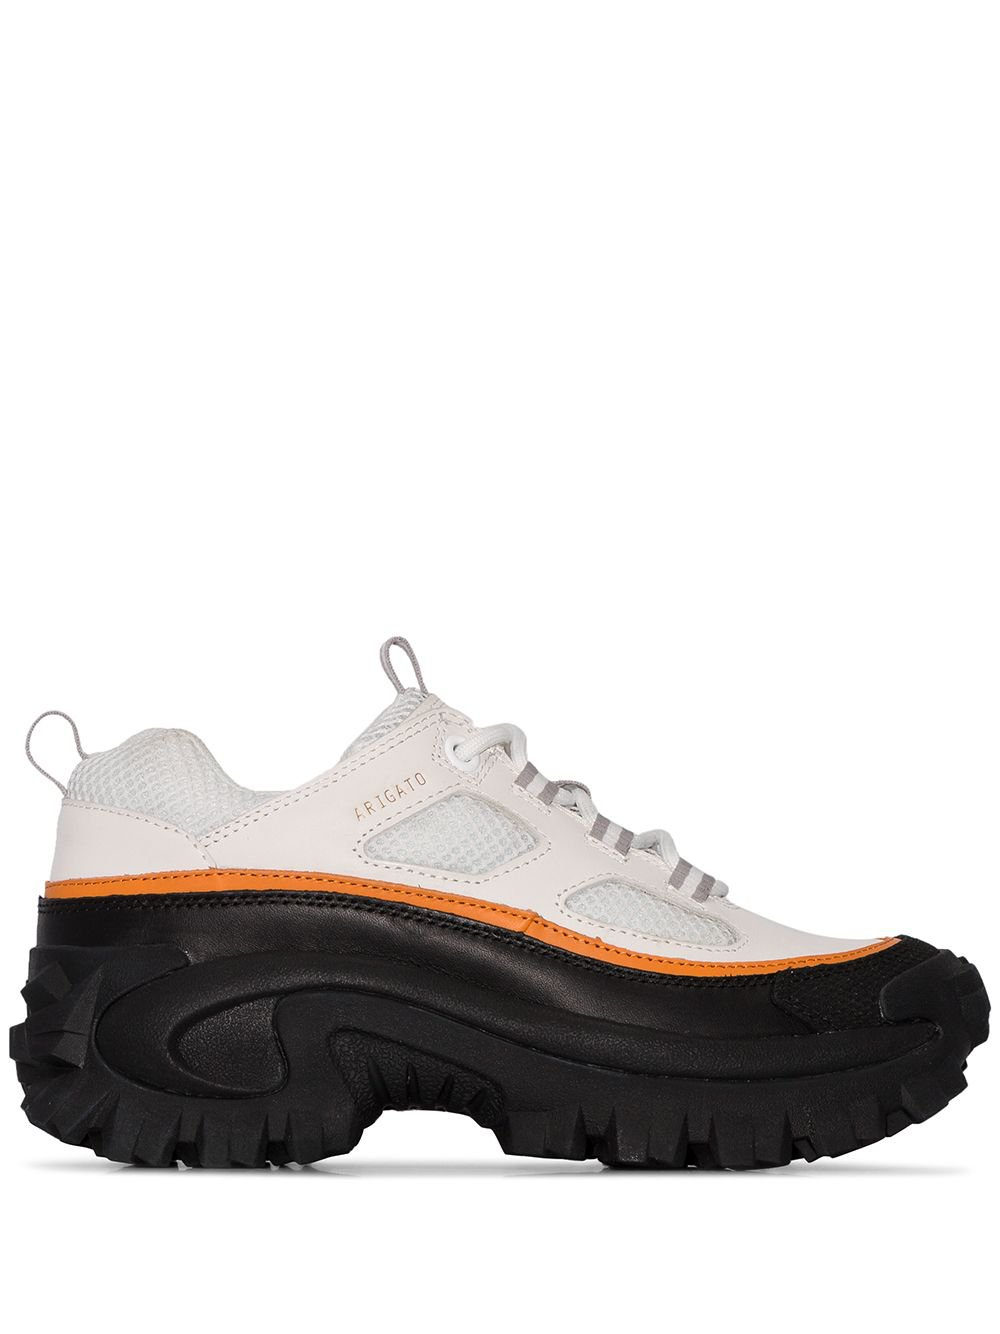 Axel Arigato Excelsior Chunky Sole Sneakers